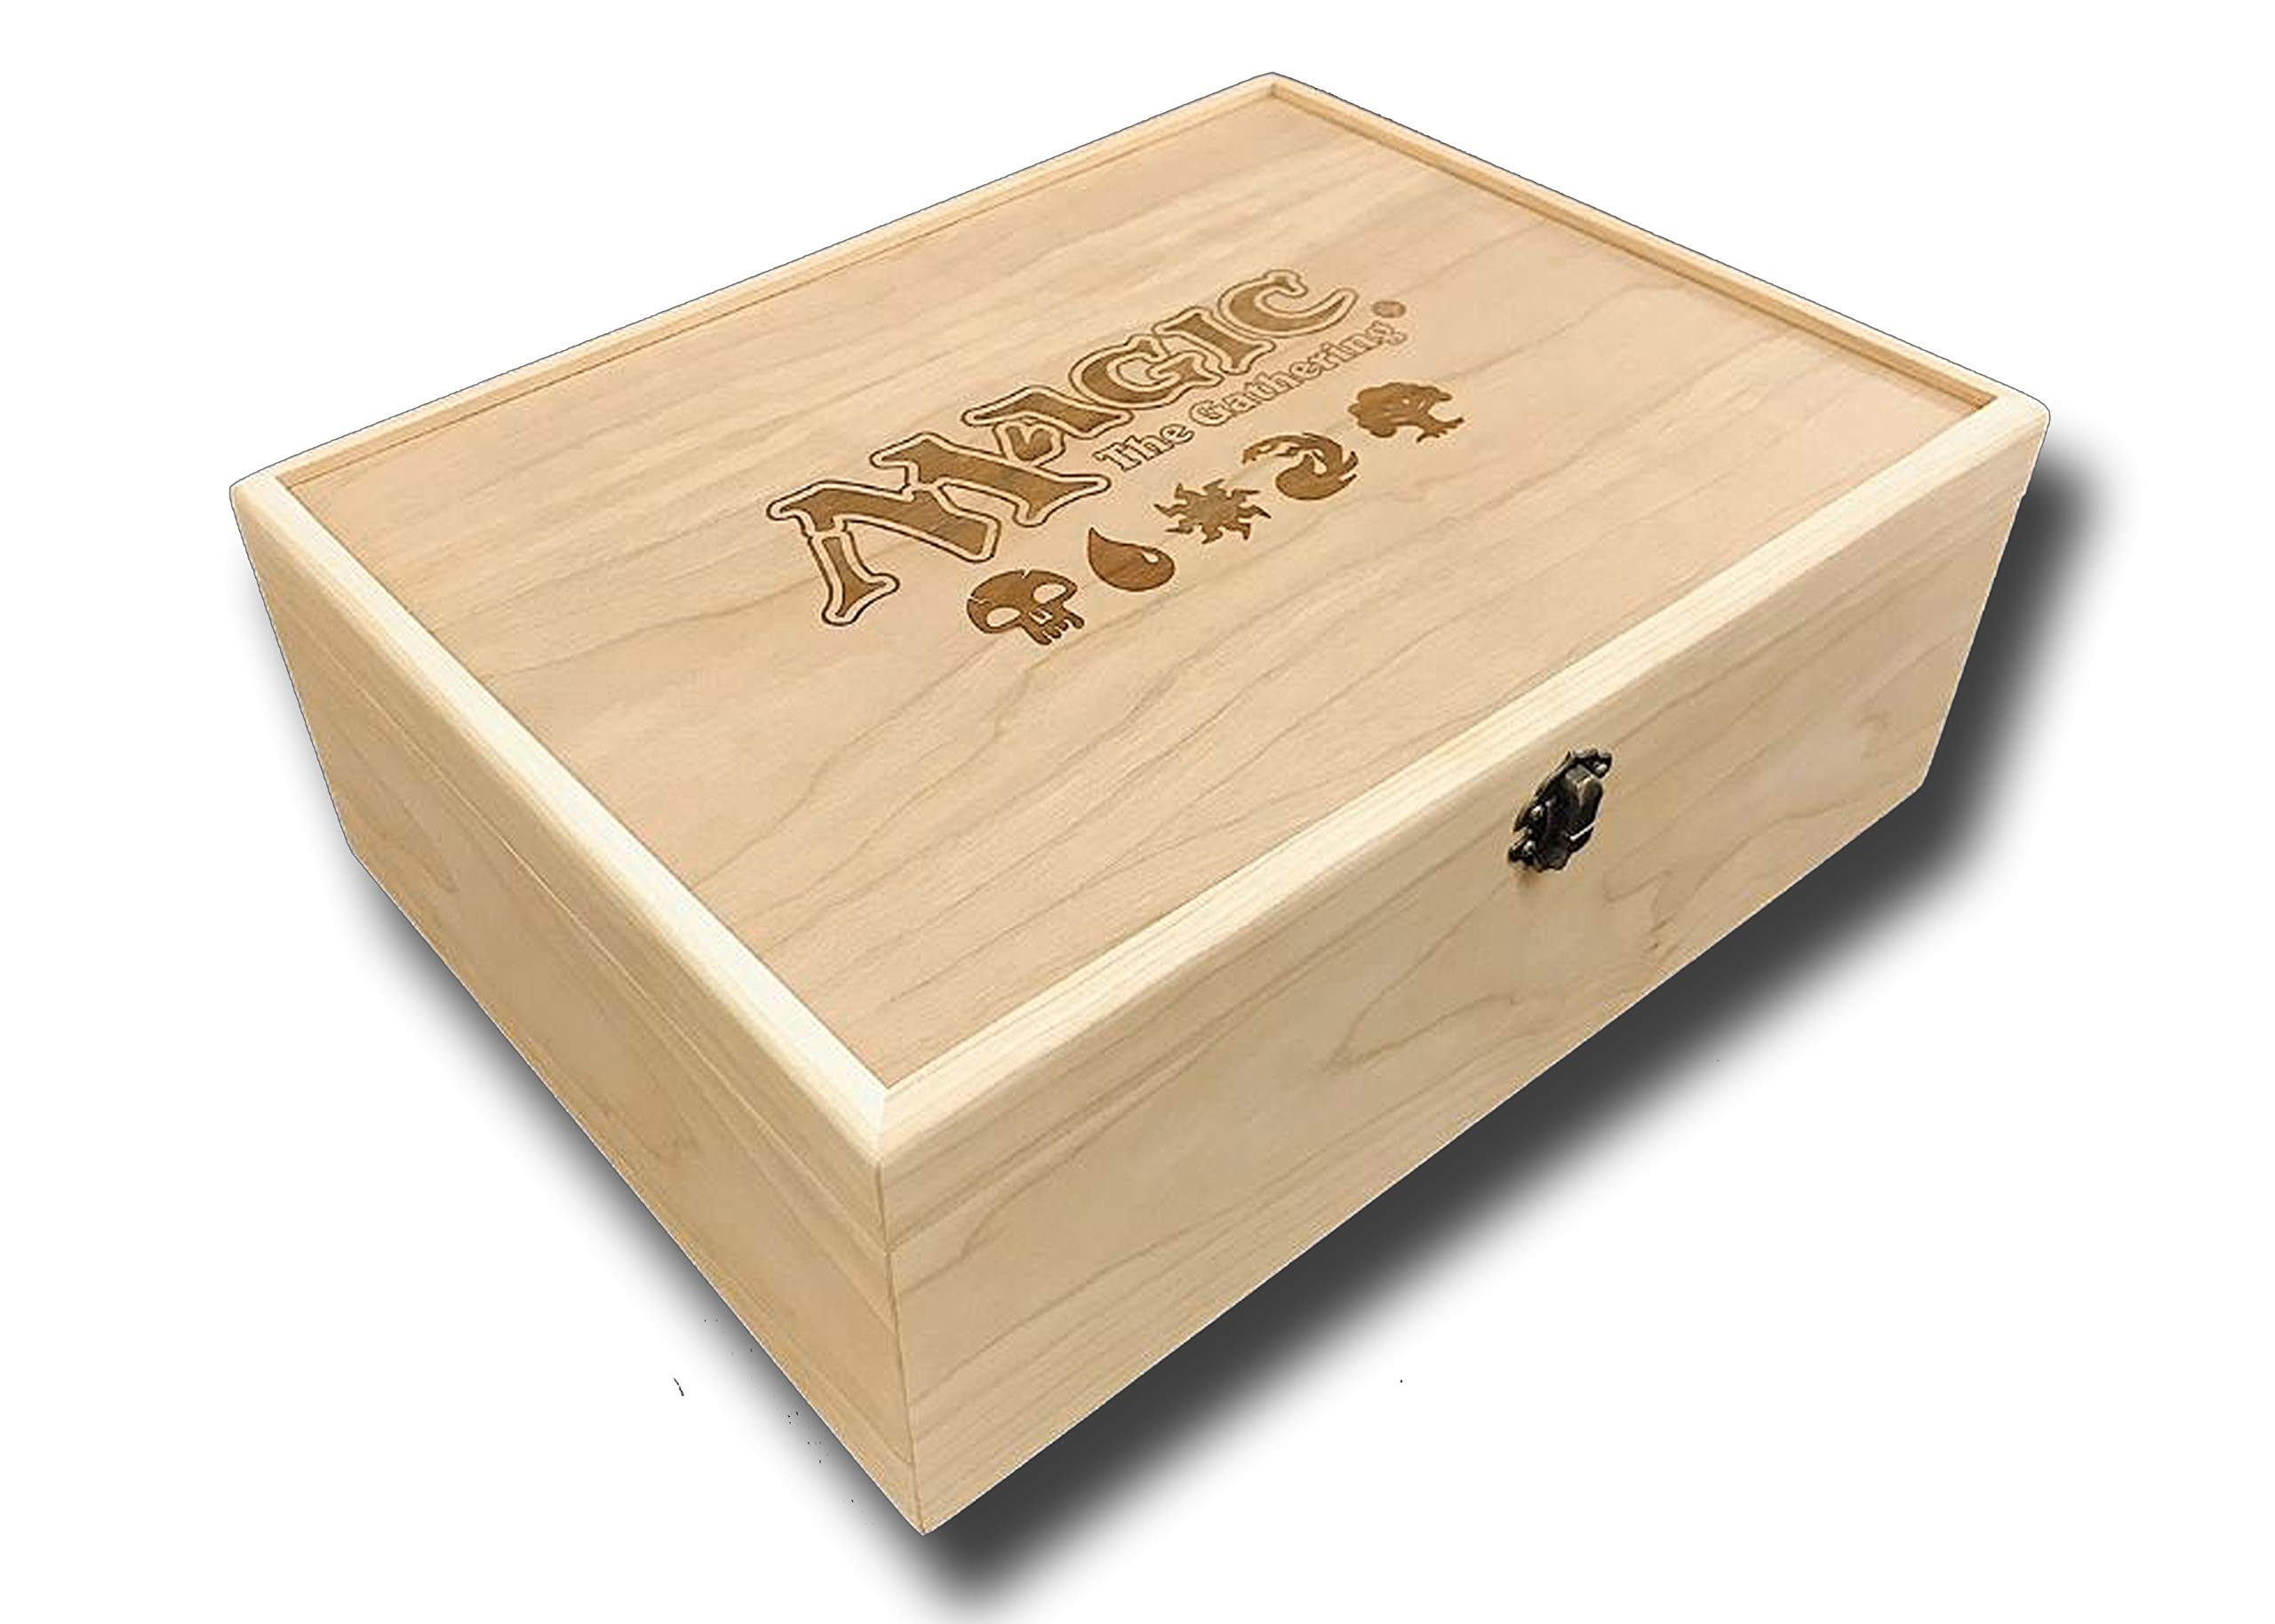 Designcraft Industries Magic The Gathering Engraved Deck Box with Hinges & Latch-13 3/8 x 10 1/4 x 4 3/4- Cherry Box